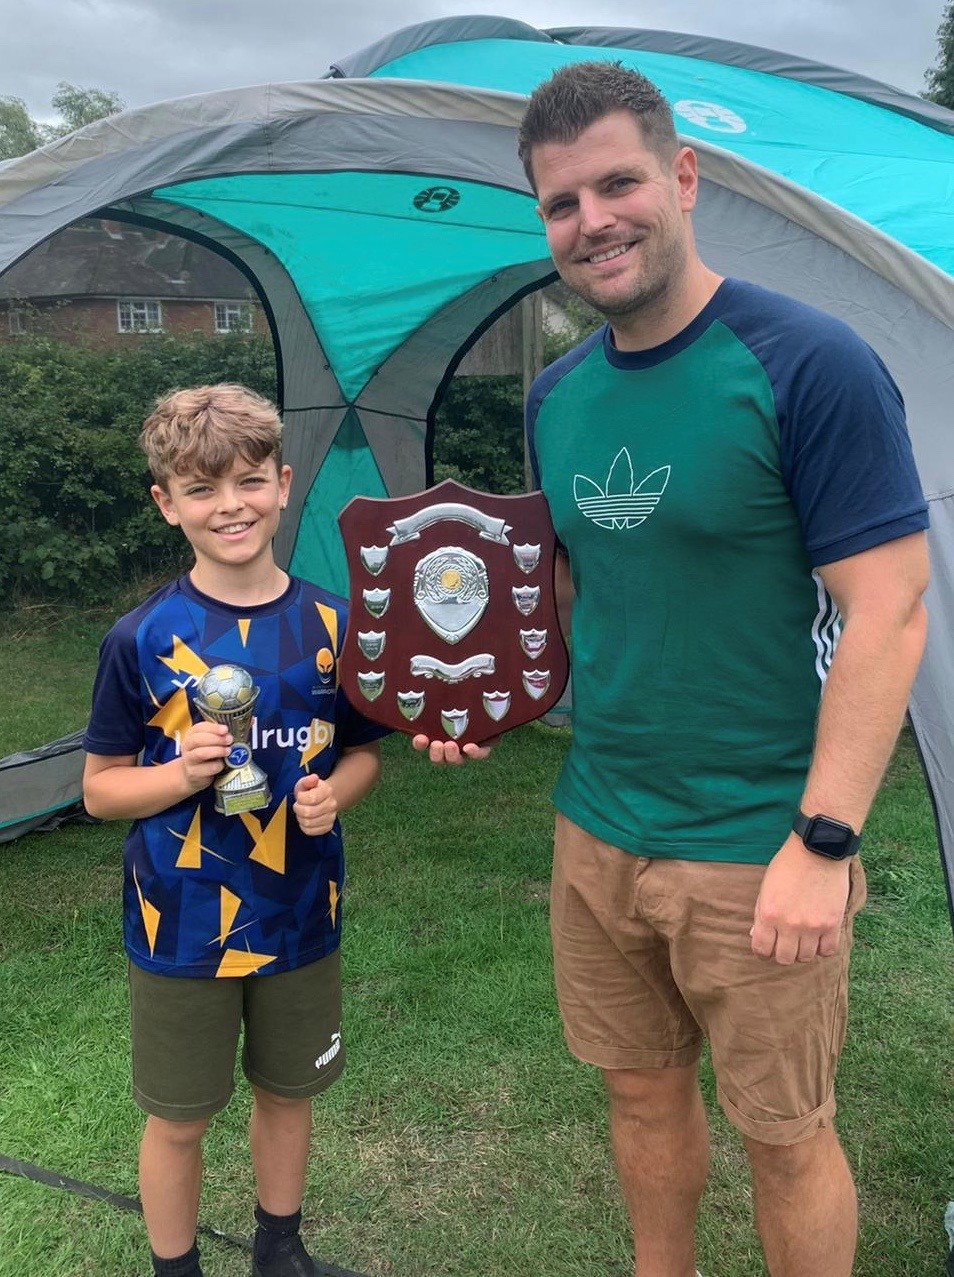 Club Award Recognises Junior Football Coach's Contribution